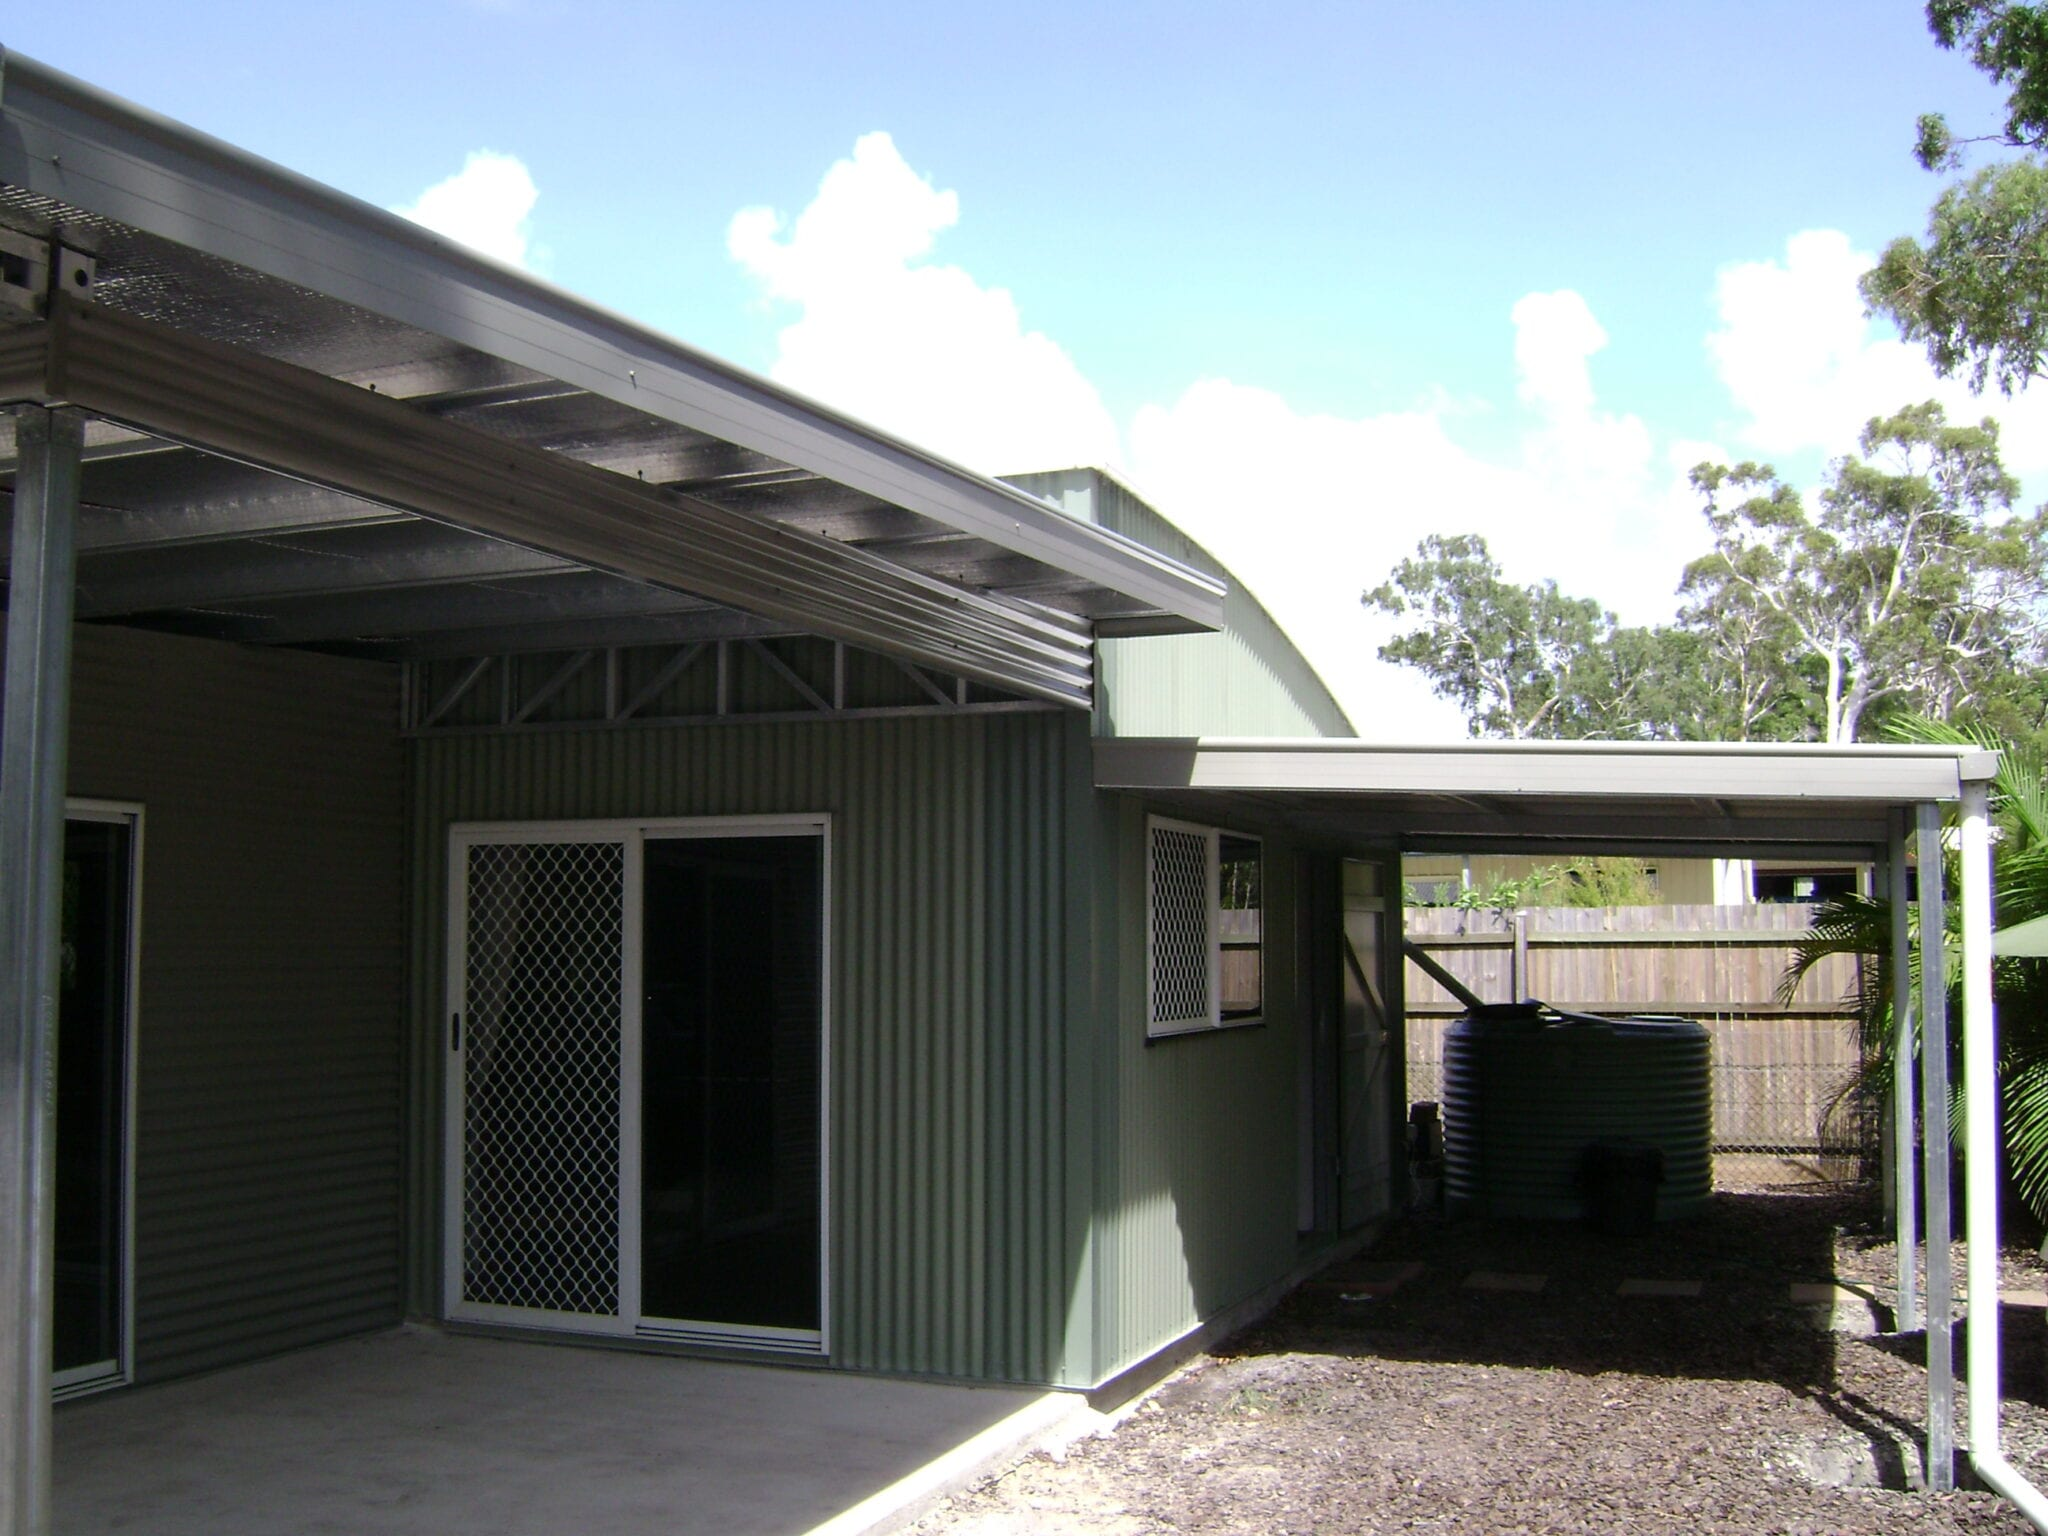 Green curved roof with owning (2)